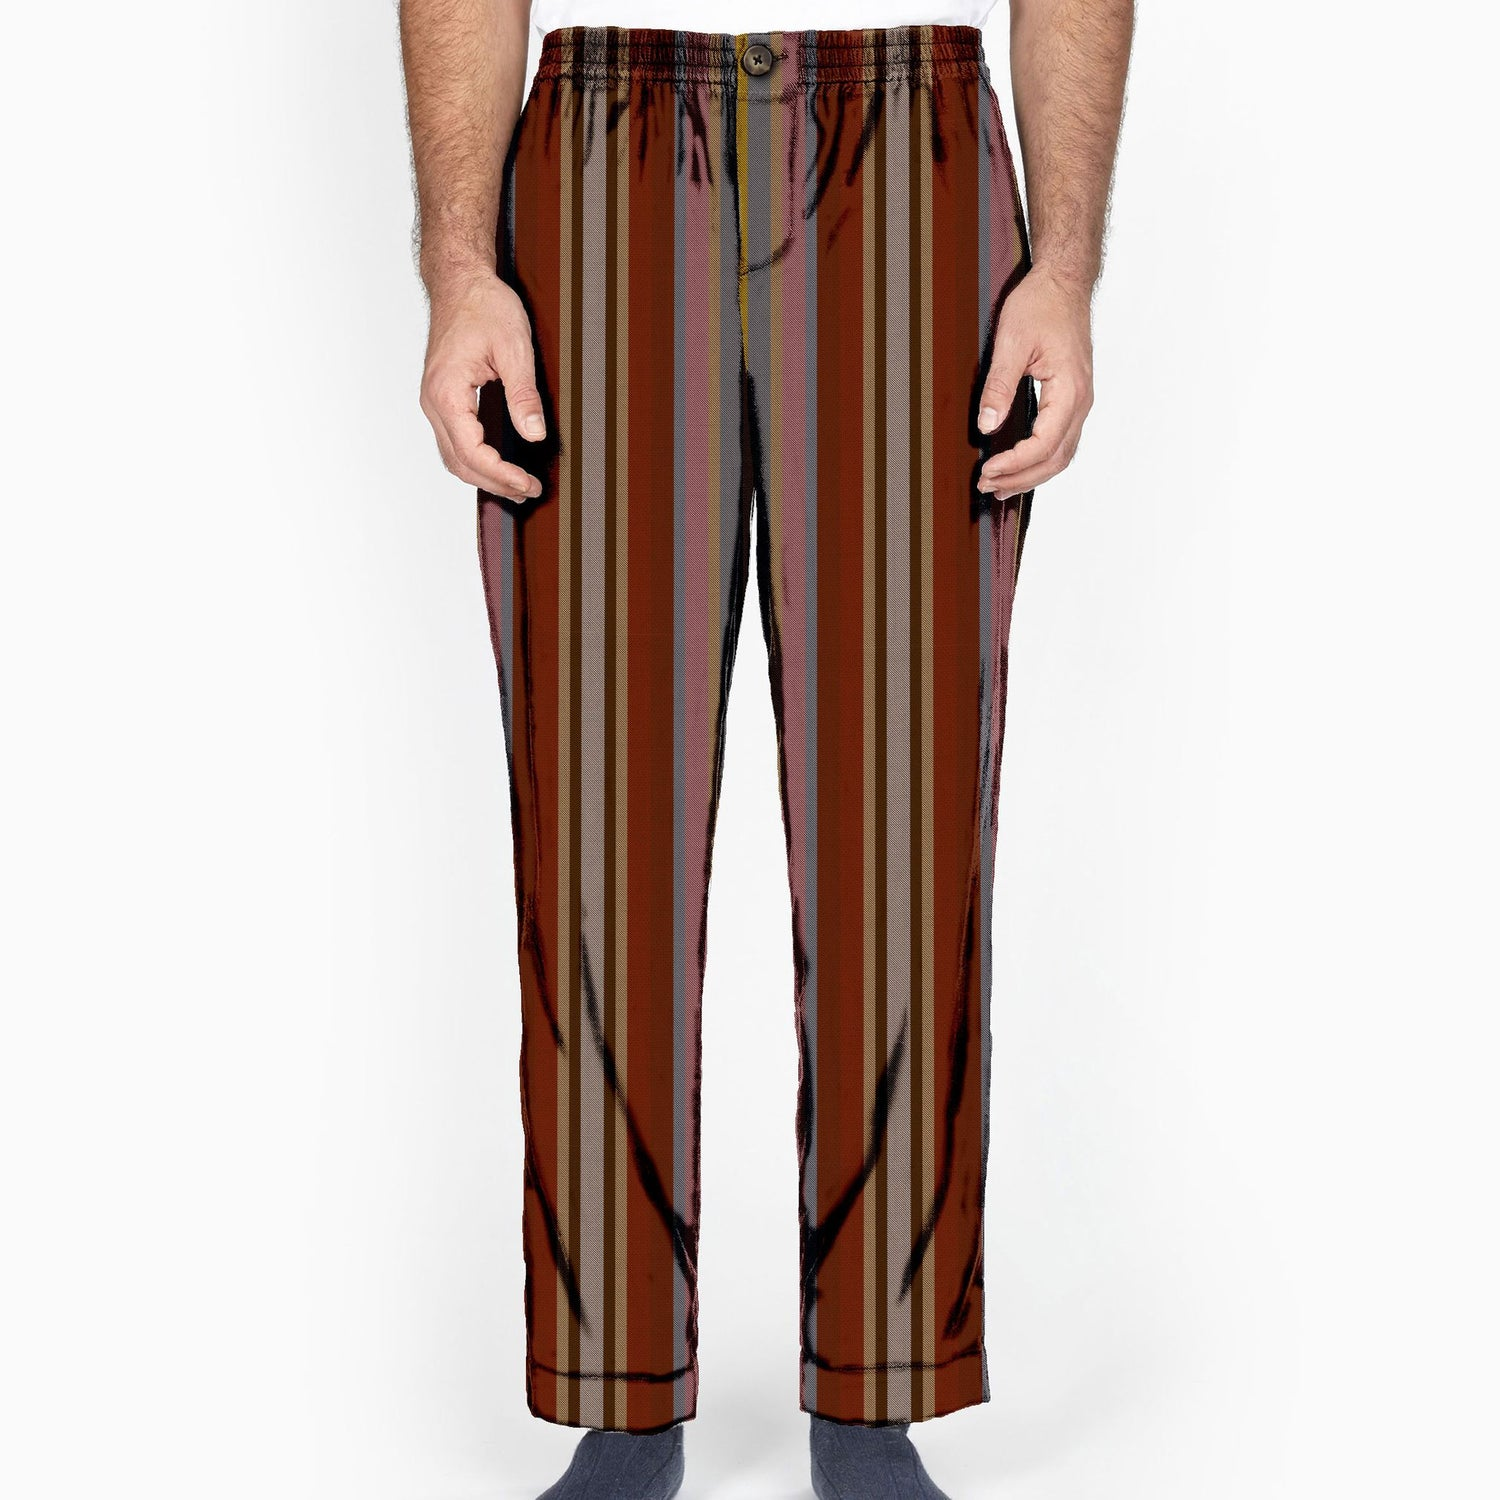 The Pin Ups Stripe Lounge Pant